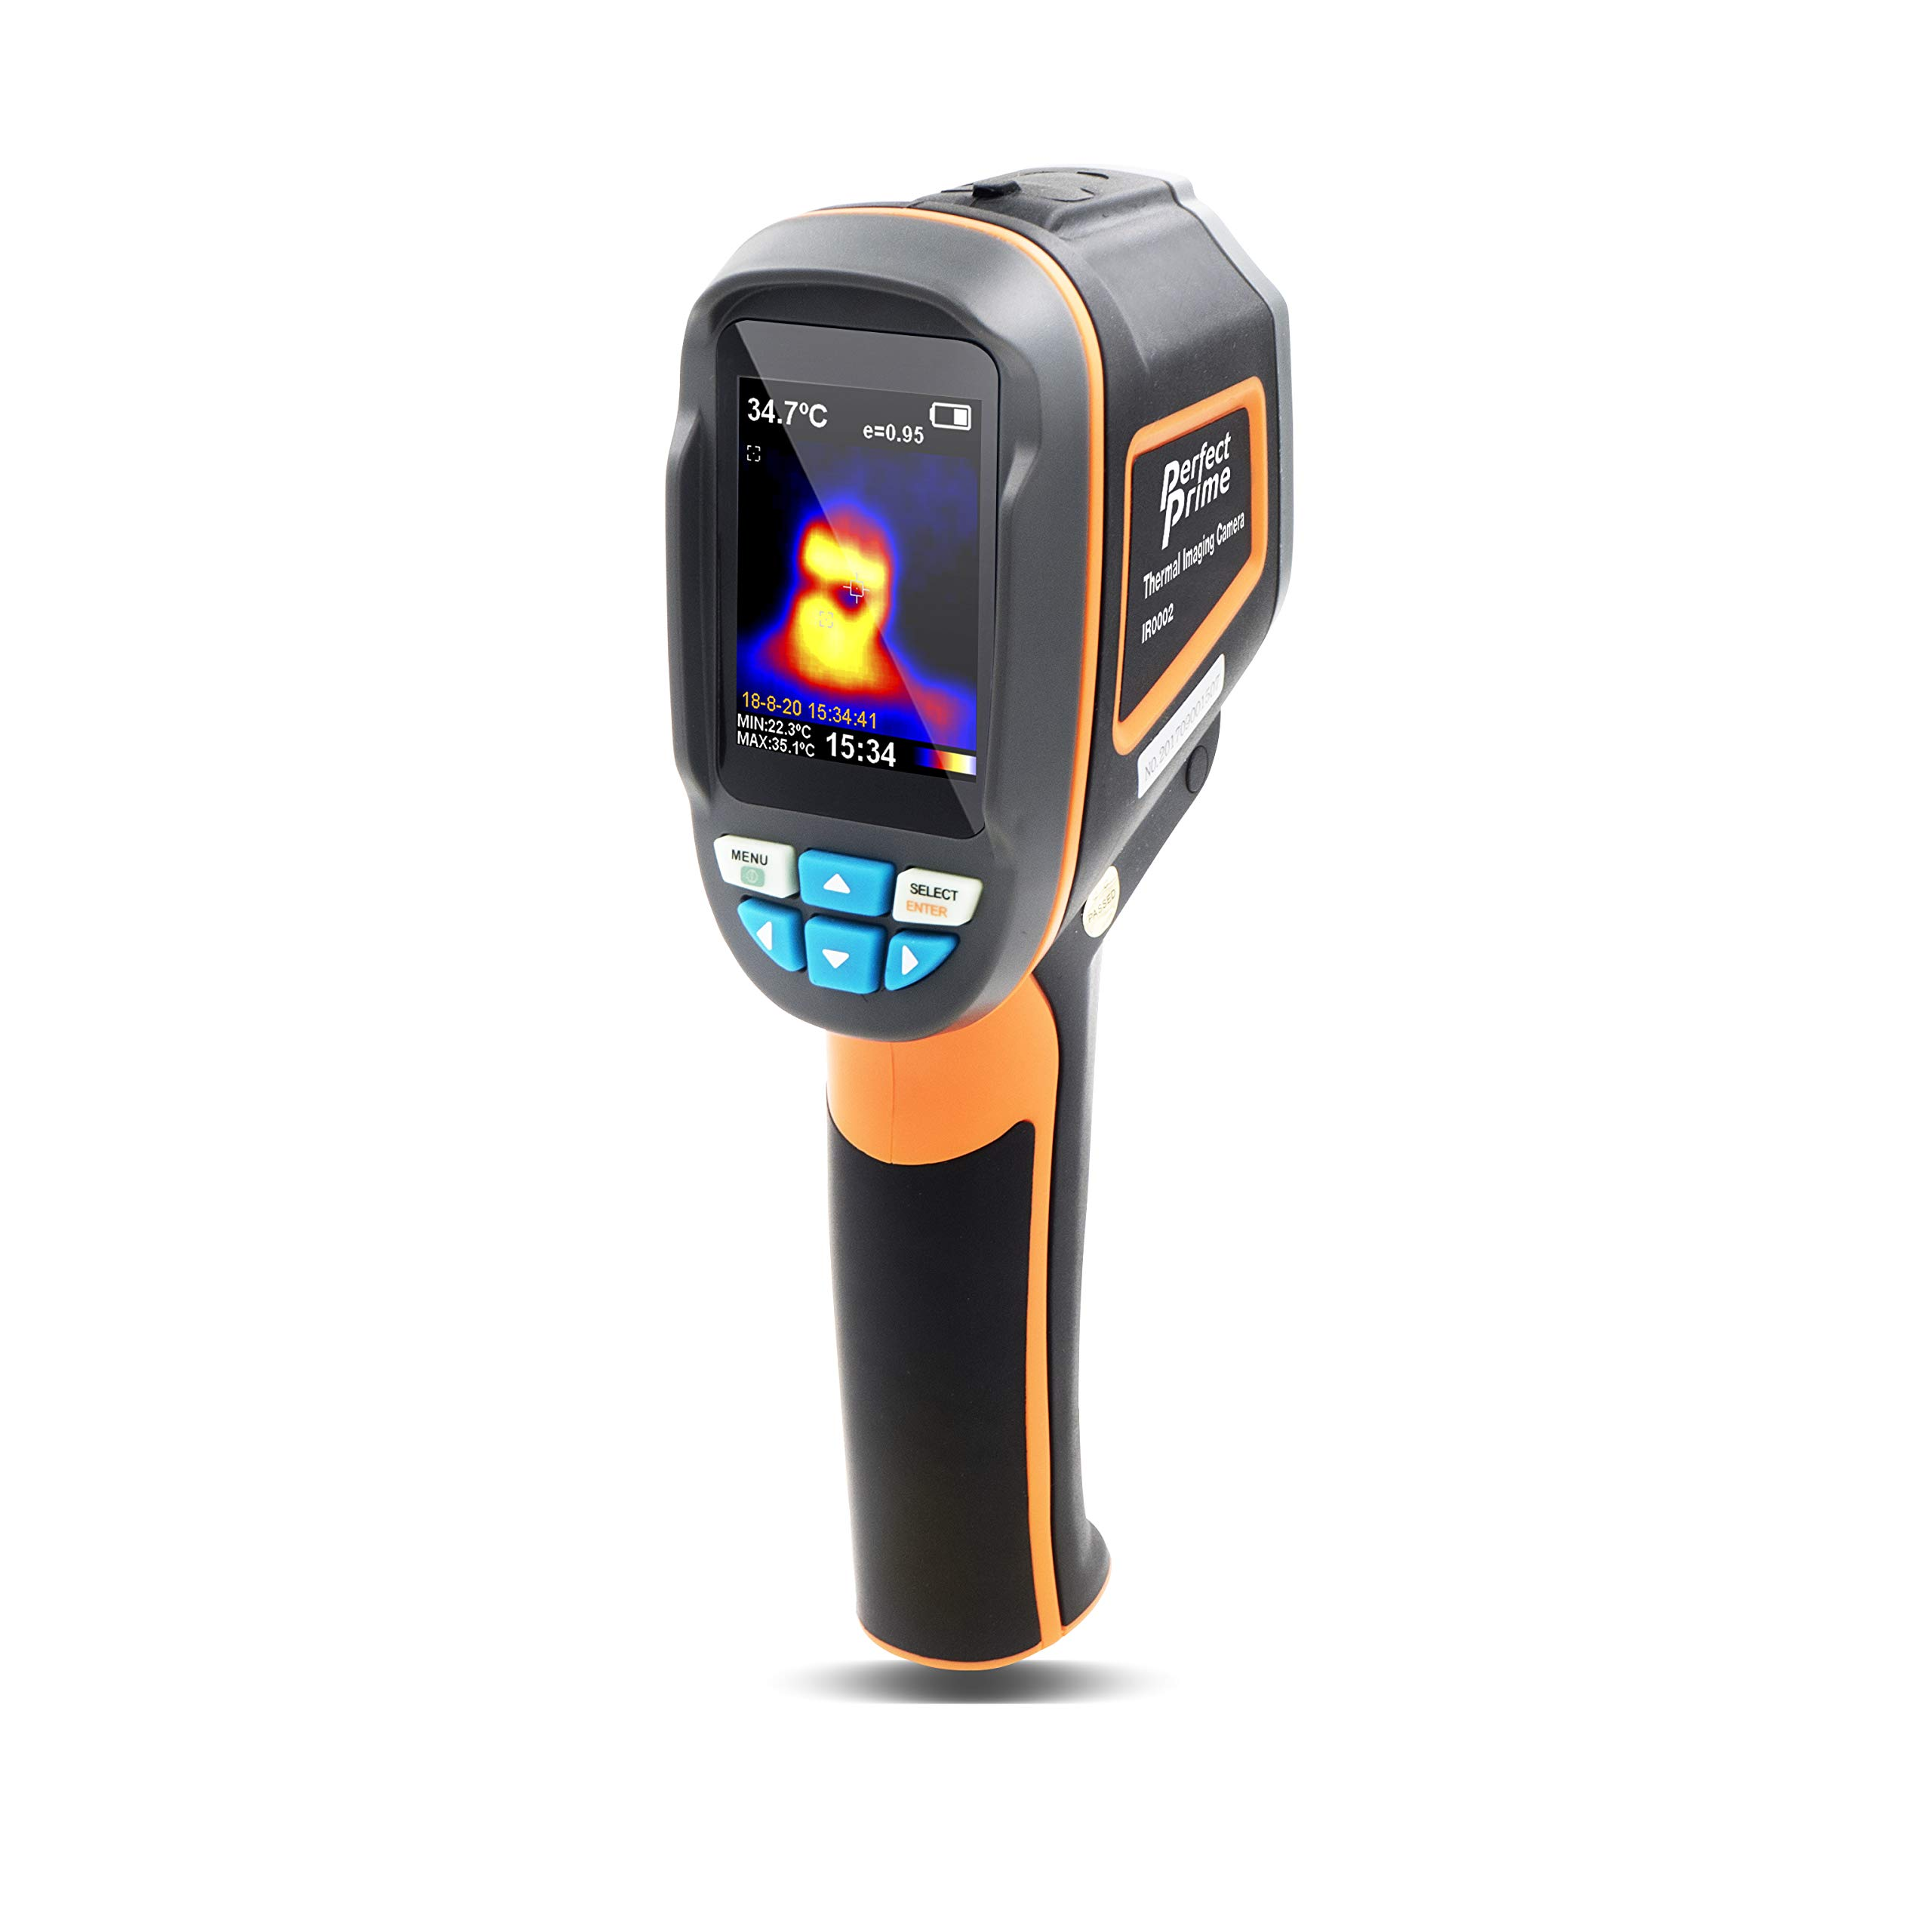 Perfect-Prime IR0002, Infrared (IR) Thermal Imager & Visible Light Camera with IR Resolution 3600 Pixels & Temperature Range from -20~300°C, 6Hz Refresh Rate by PerfectPrime